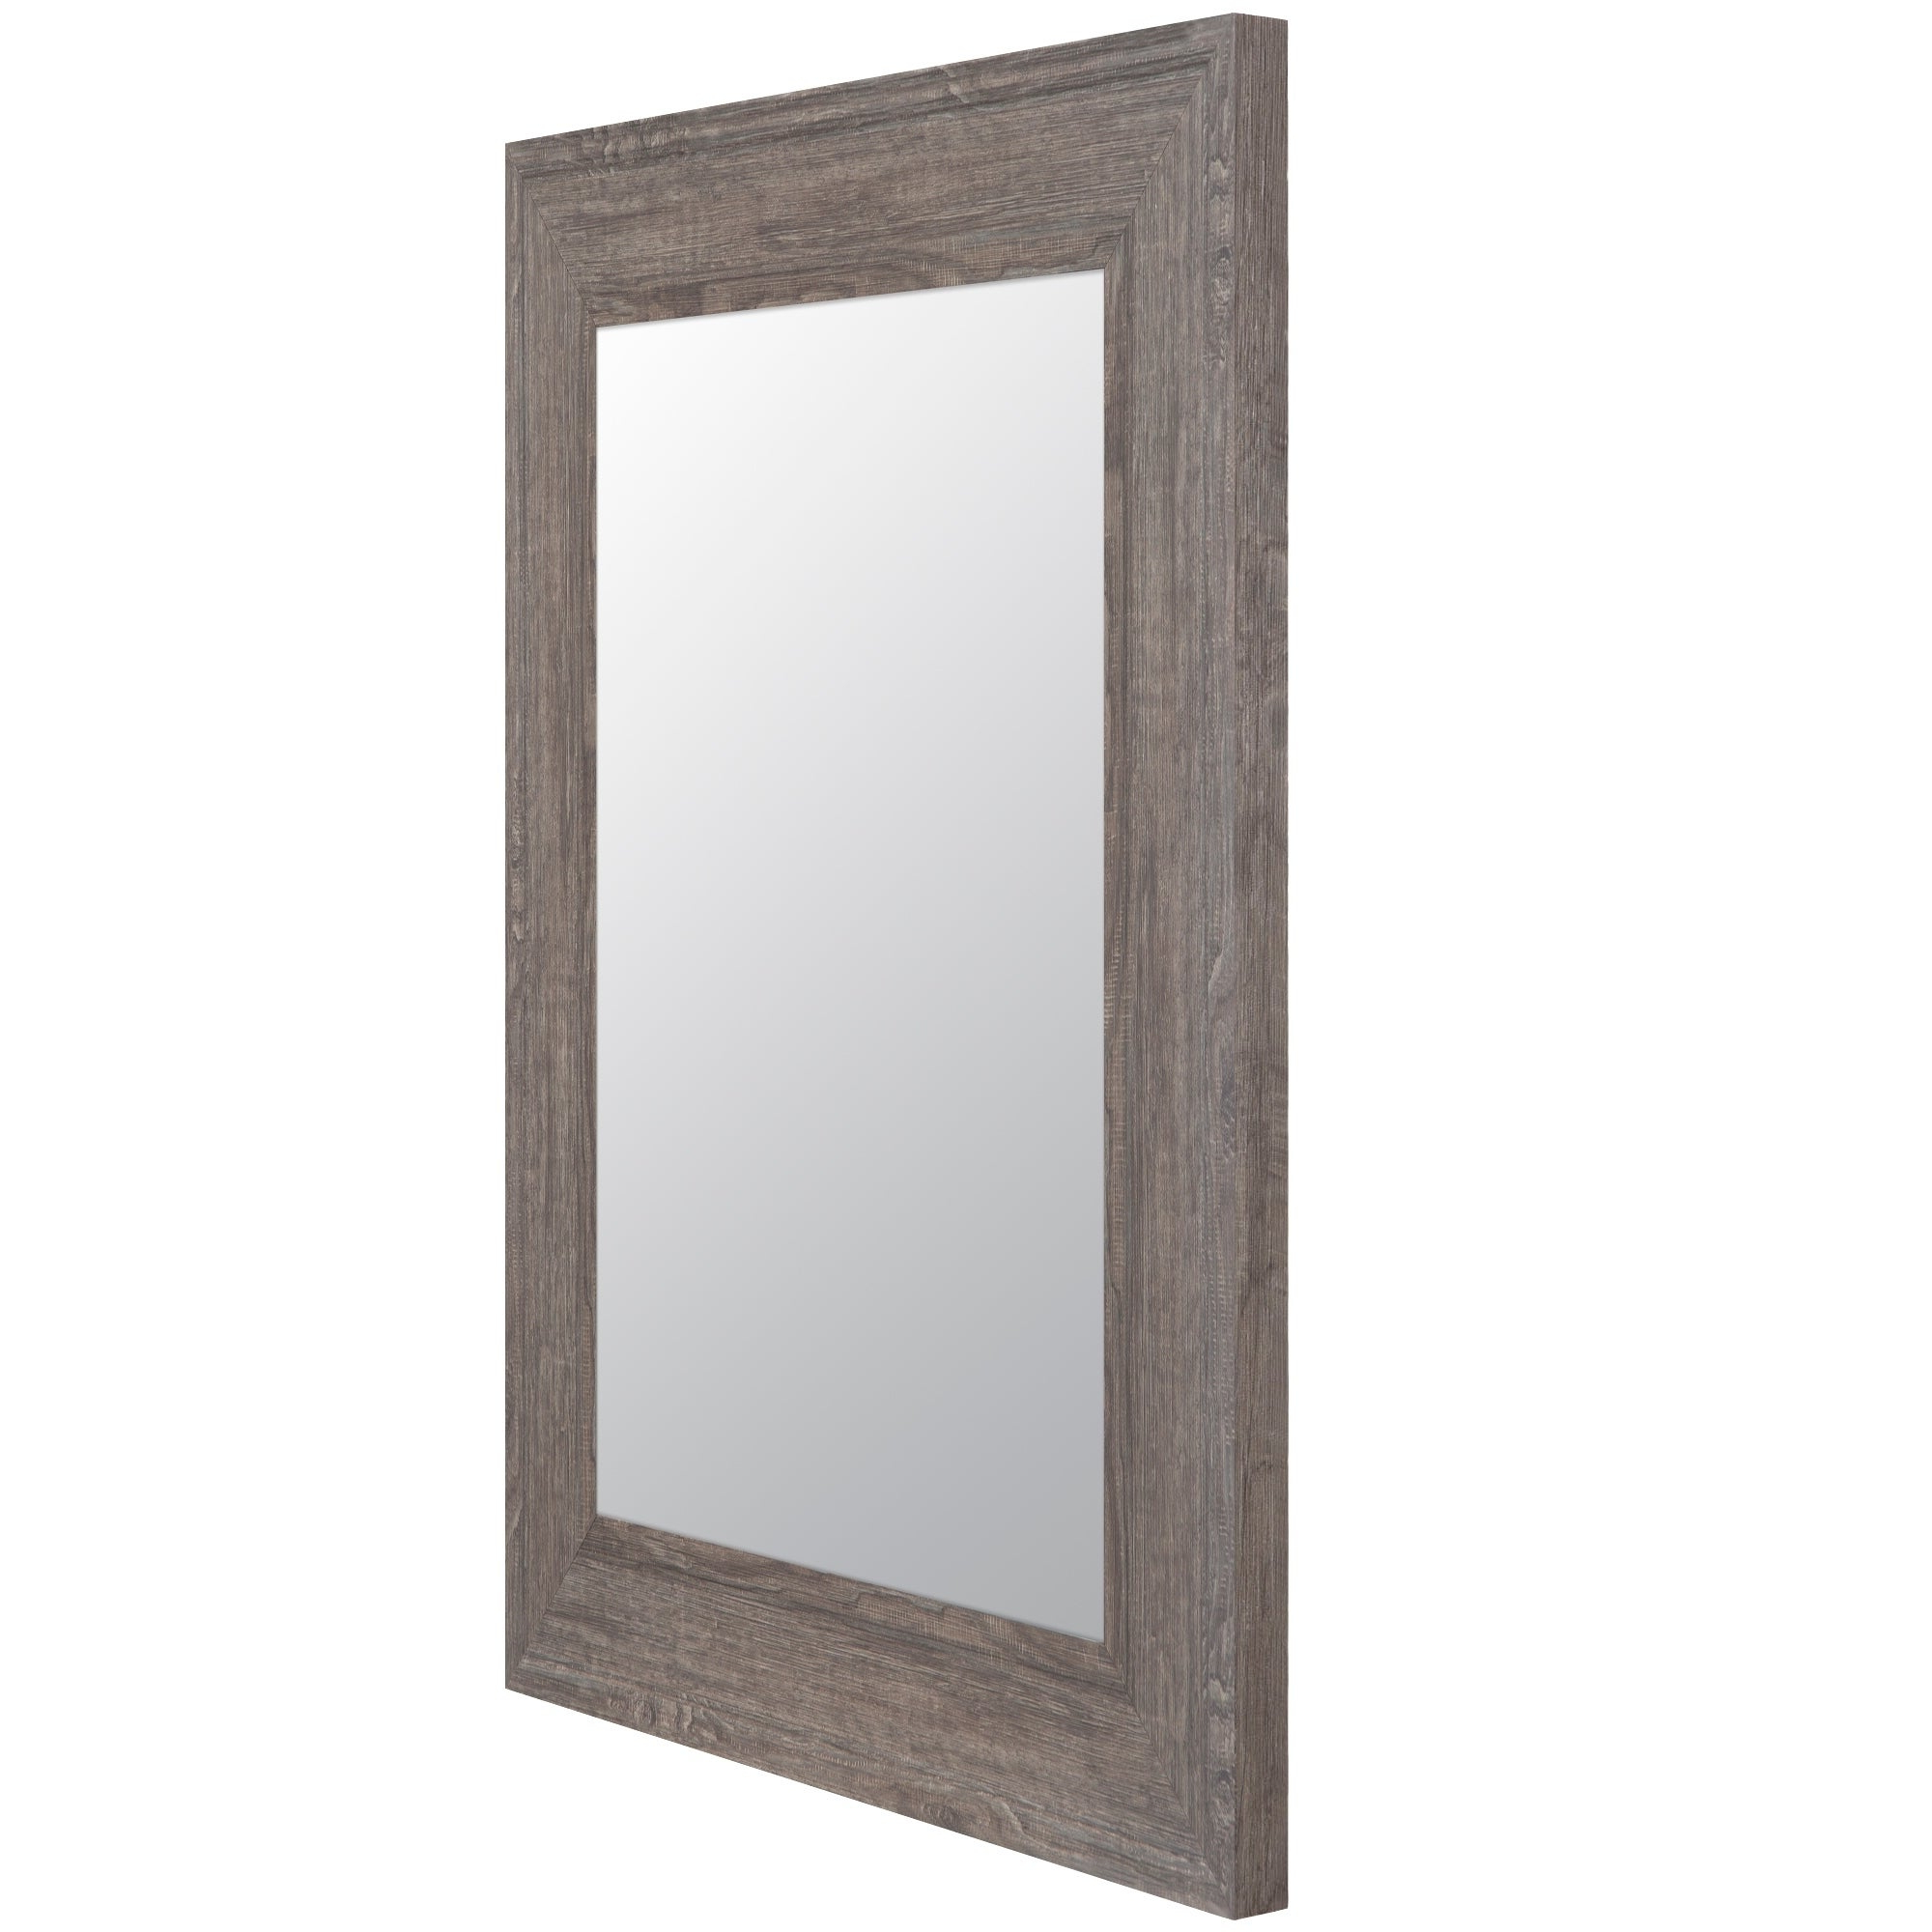 Gallery Solutions Graywash Woodgrain Framed Accent Wall Mirror – Grey Throughout Trendy Farmhouse Woodgrain And Leaf Accent Wall Mirrors (View 6 of 20)